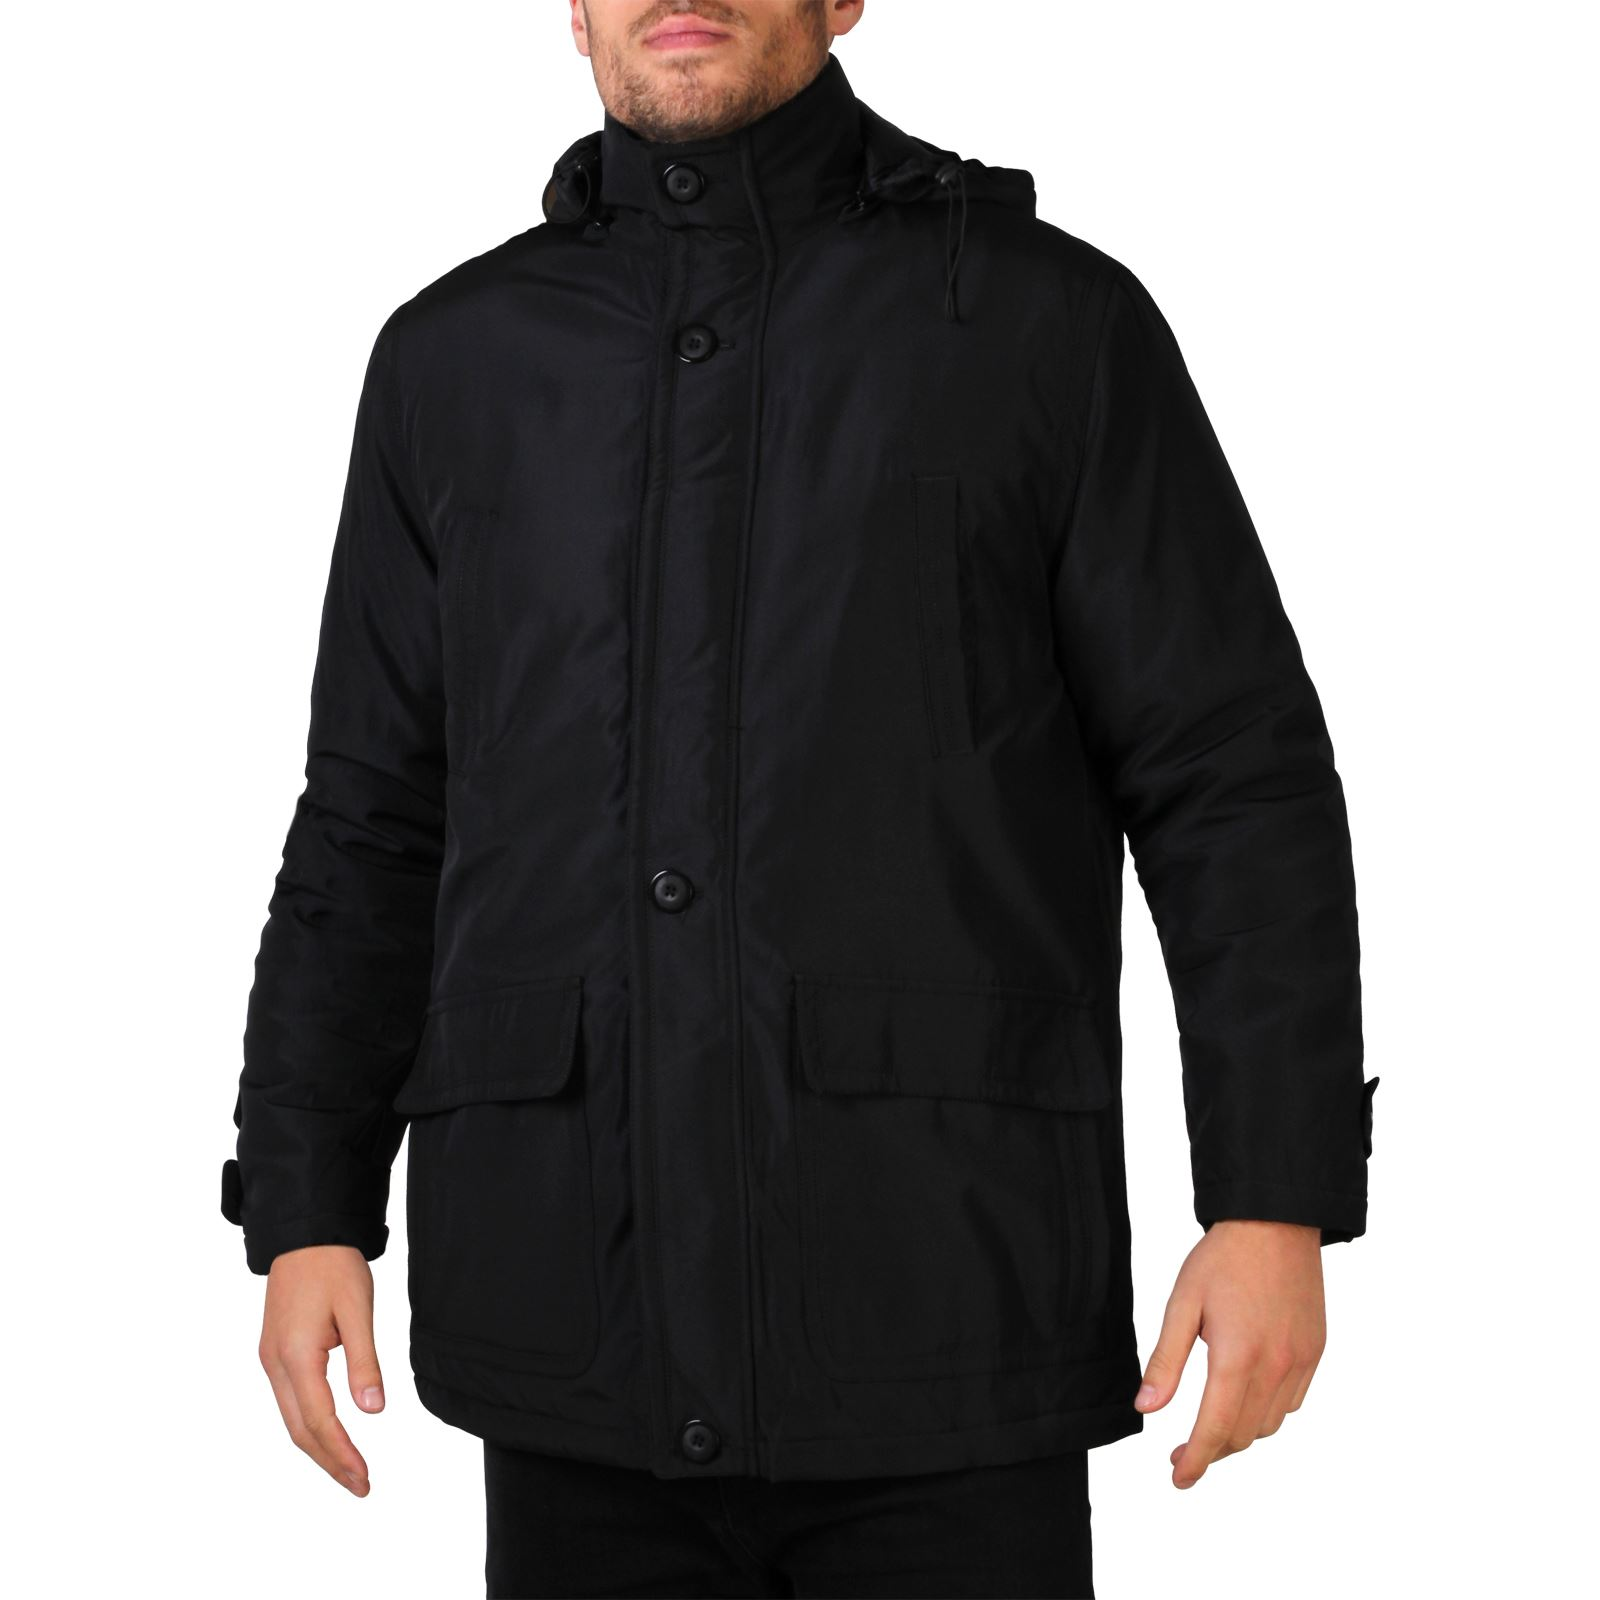 Mens Detachable Hood Warm Padded Parka Jacket Hooded